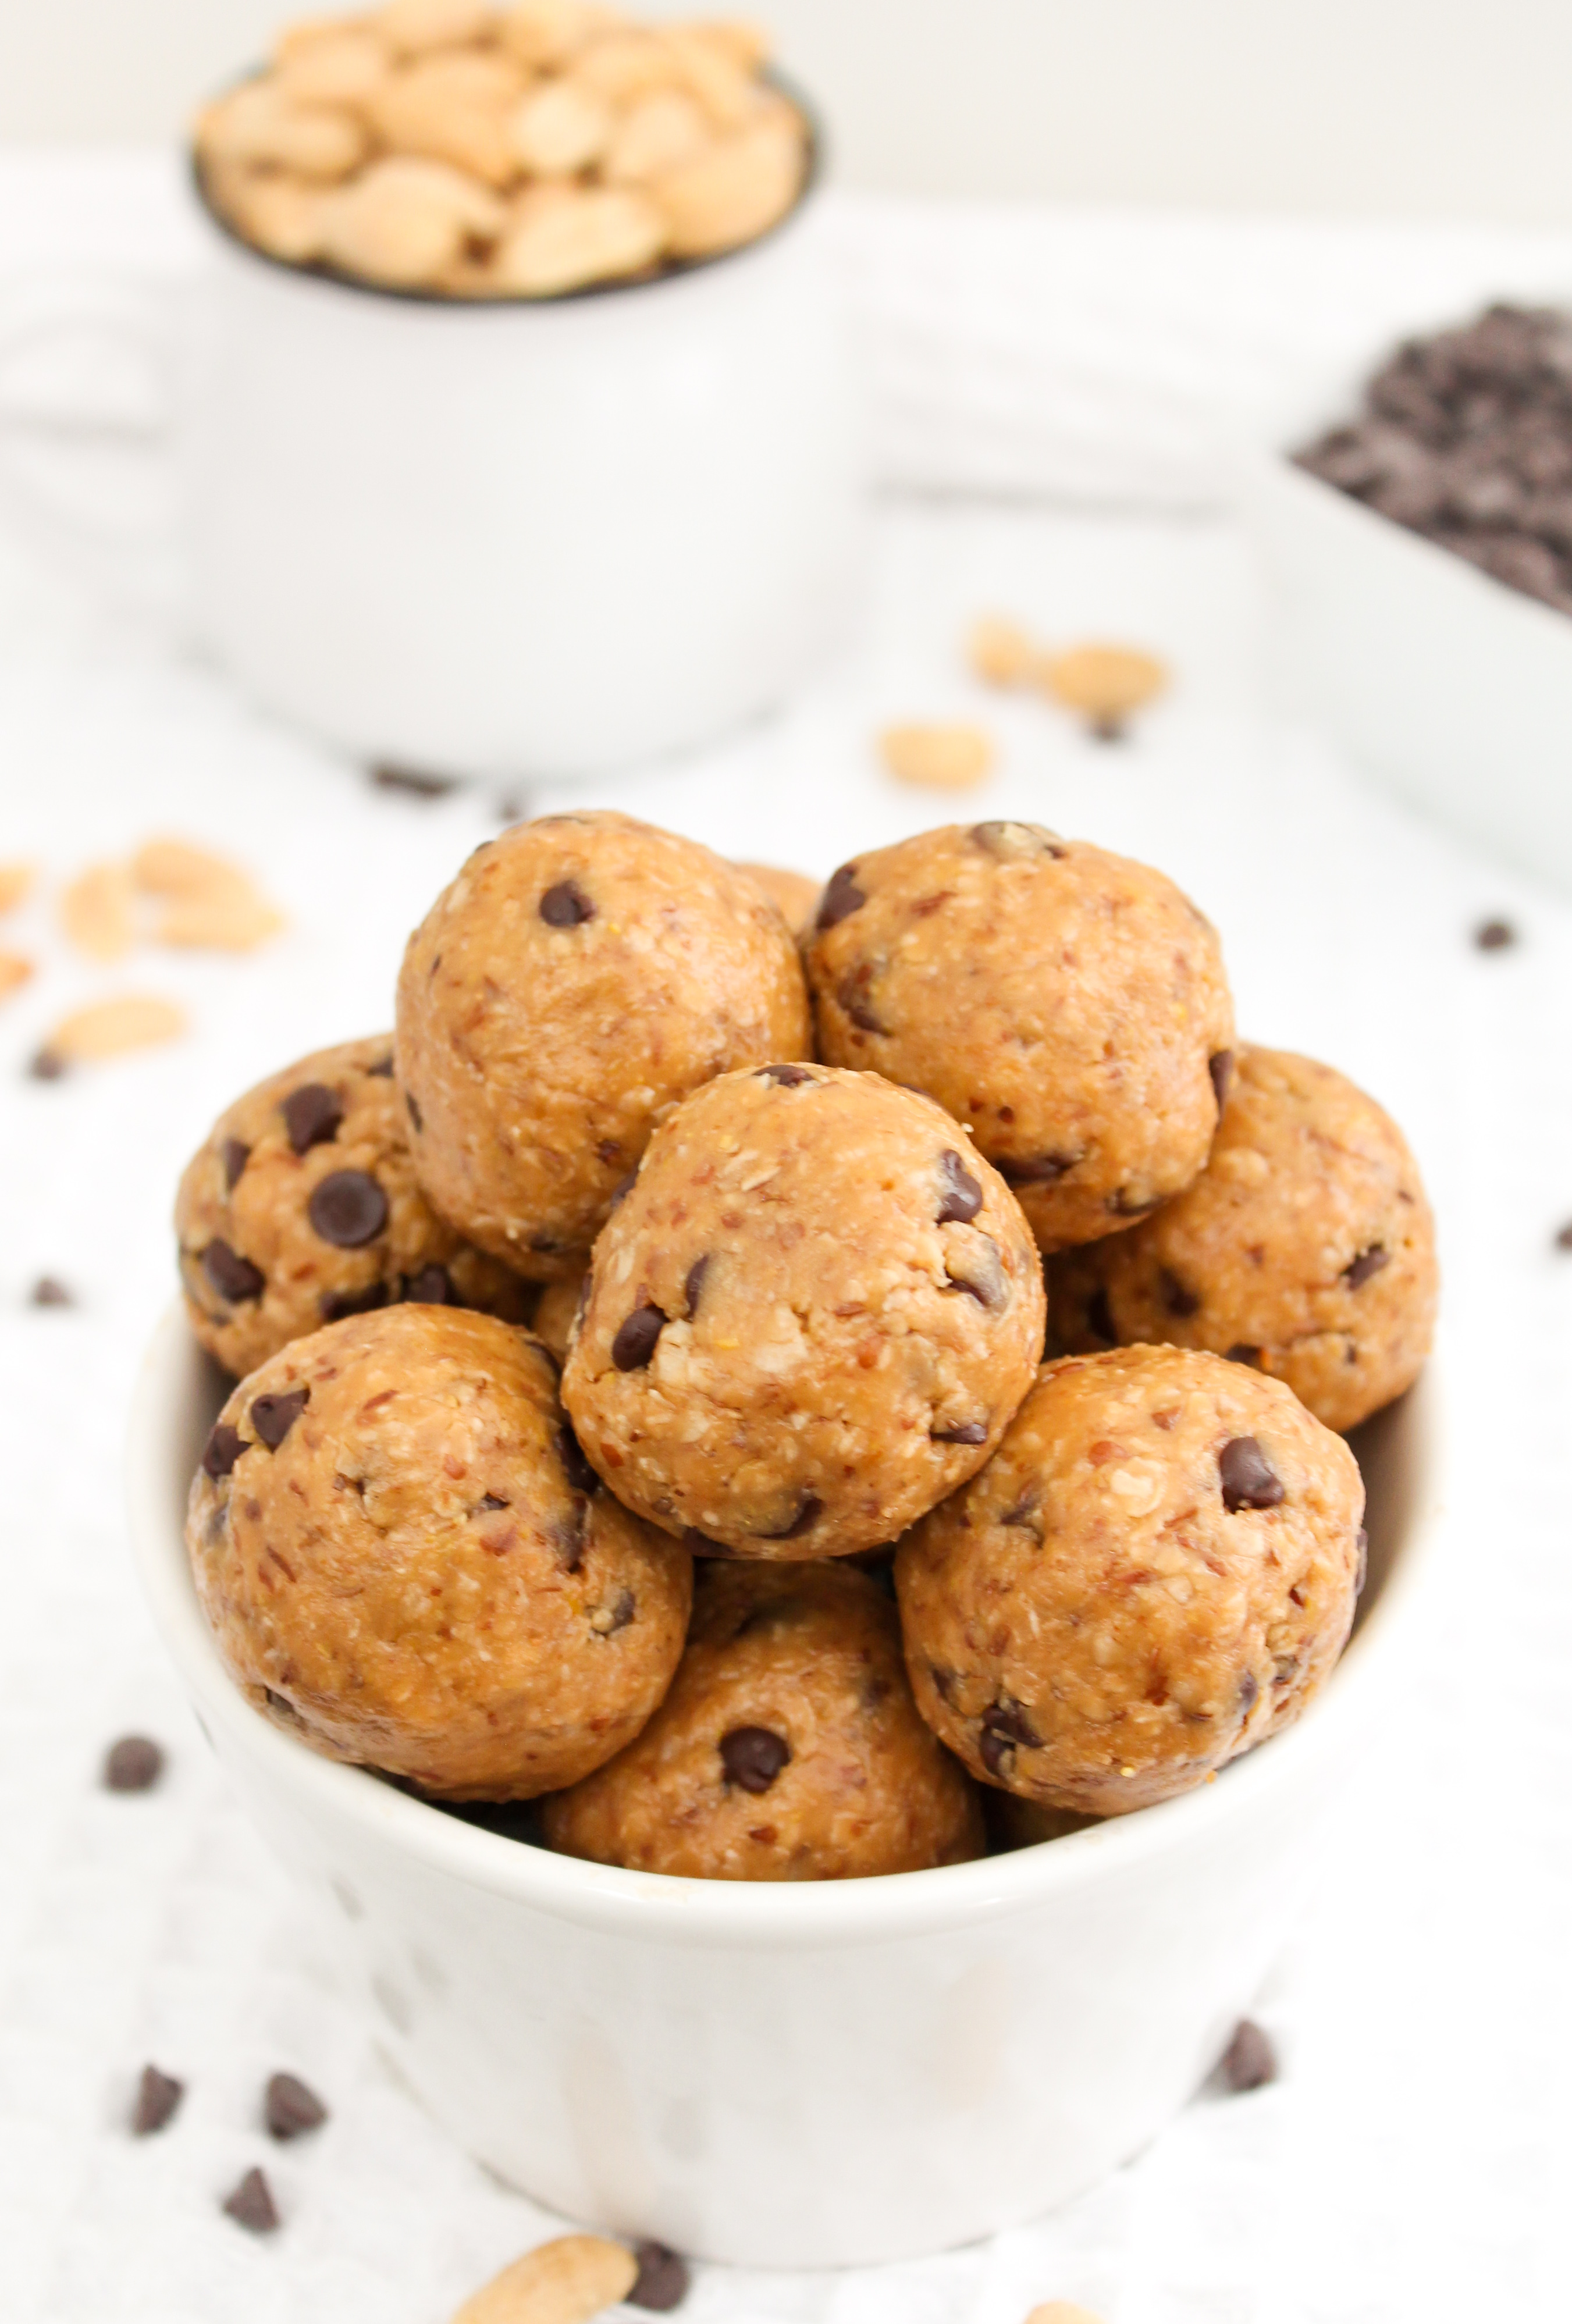 Peanut Butter Chocolate Chip Energy Protein Balls